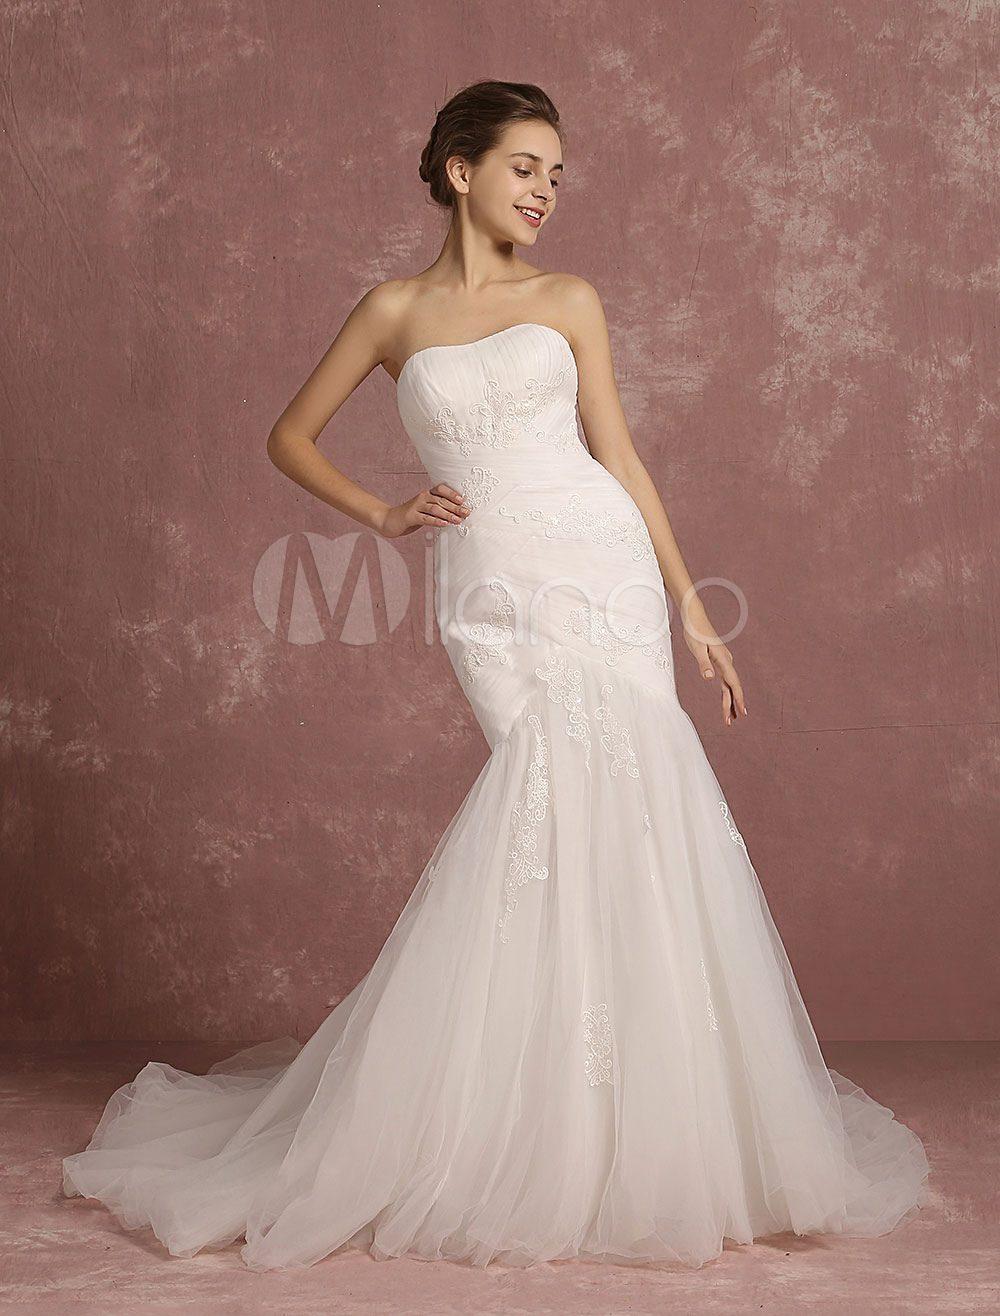 Buy Summer Wedding Dresses 2018 Tulle Lace Applique Mermaid Bridal Gown Ivory Sweetheart Strapless Sleeveless Cathedral Train Bridal Dress for $237.59 in Milanoo store